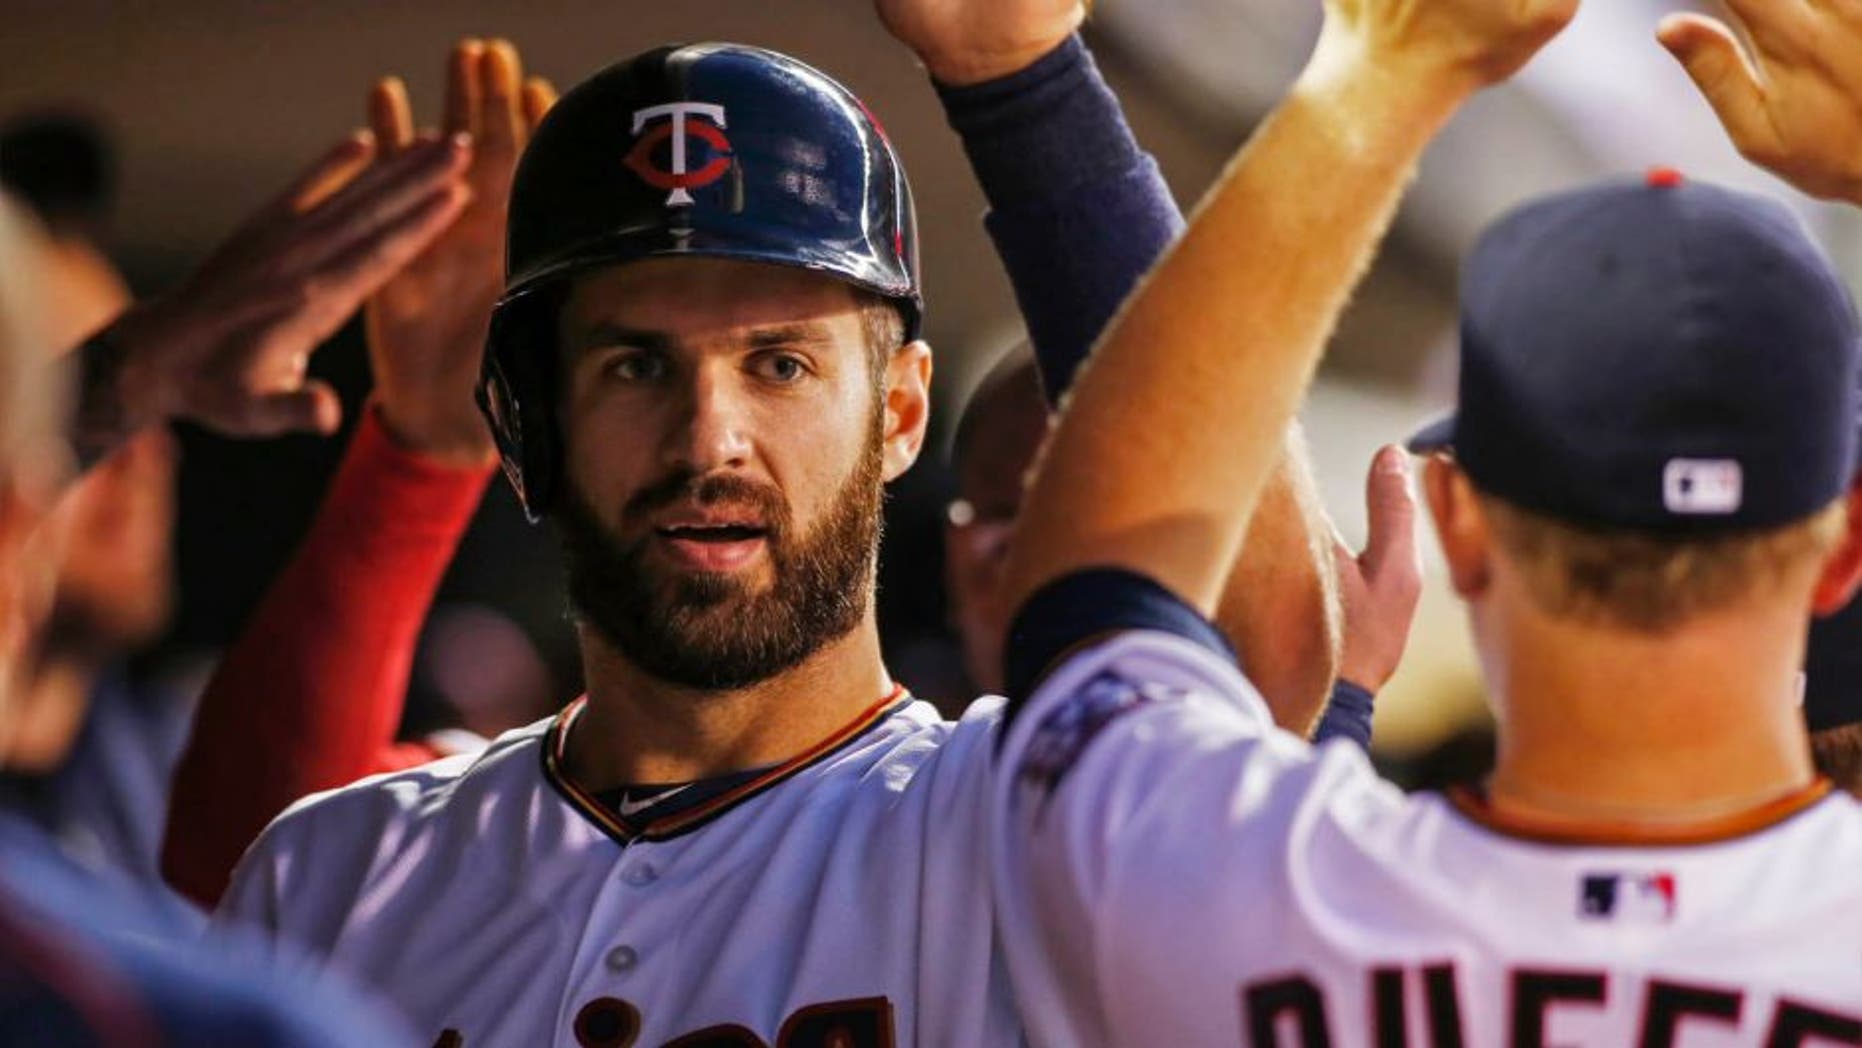 Minnesota Twins first baseman Joe Mauer celebrates his run against the Detroit Tigers in the first inning of a baseball game, Monday, Sept. 14, 2015, in Minneapolis.